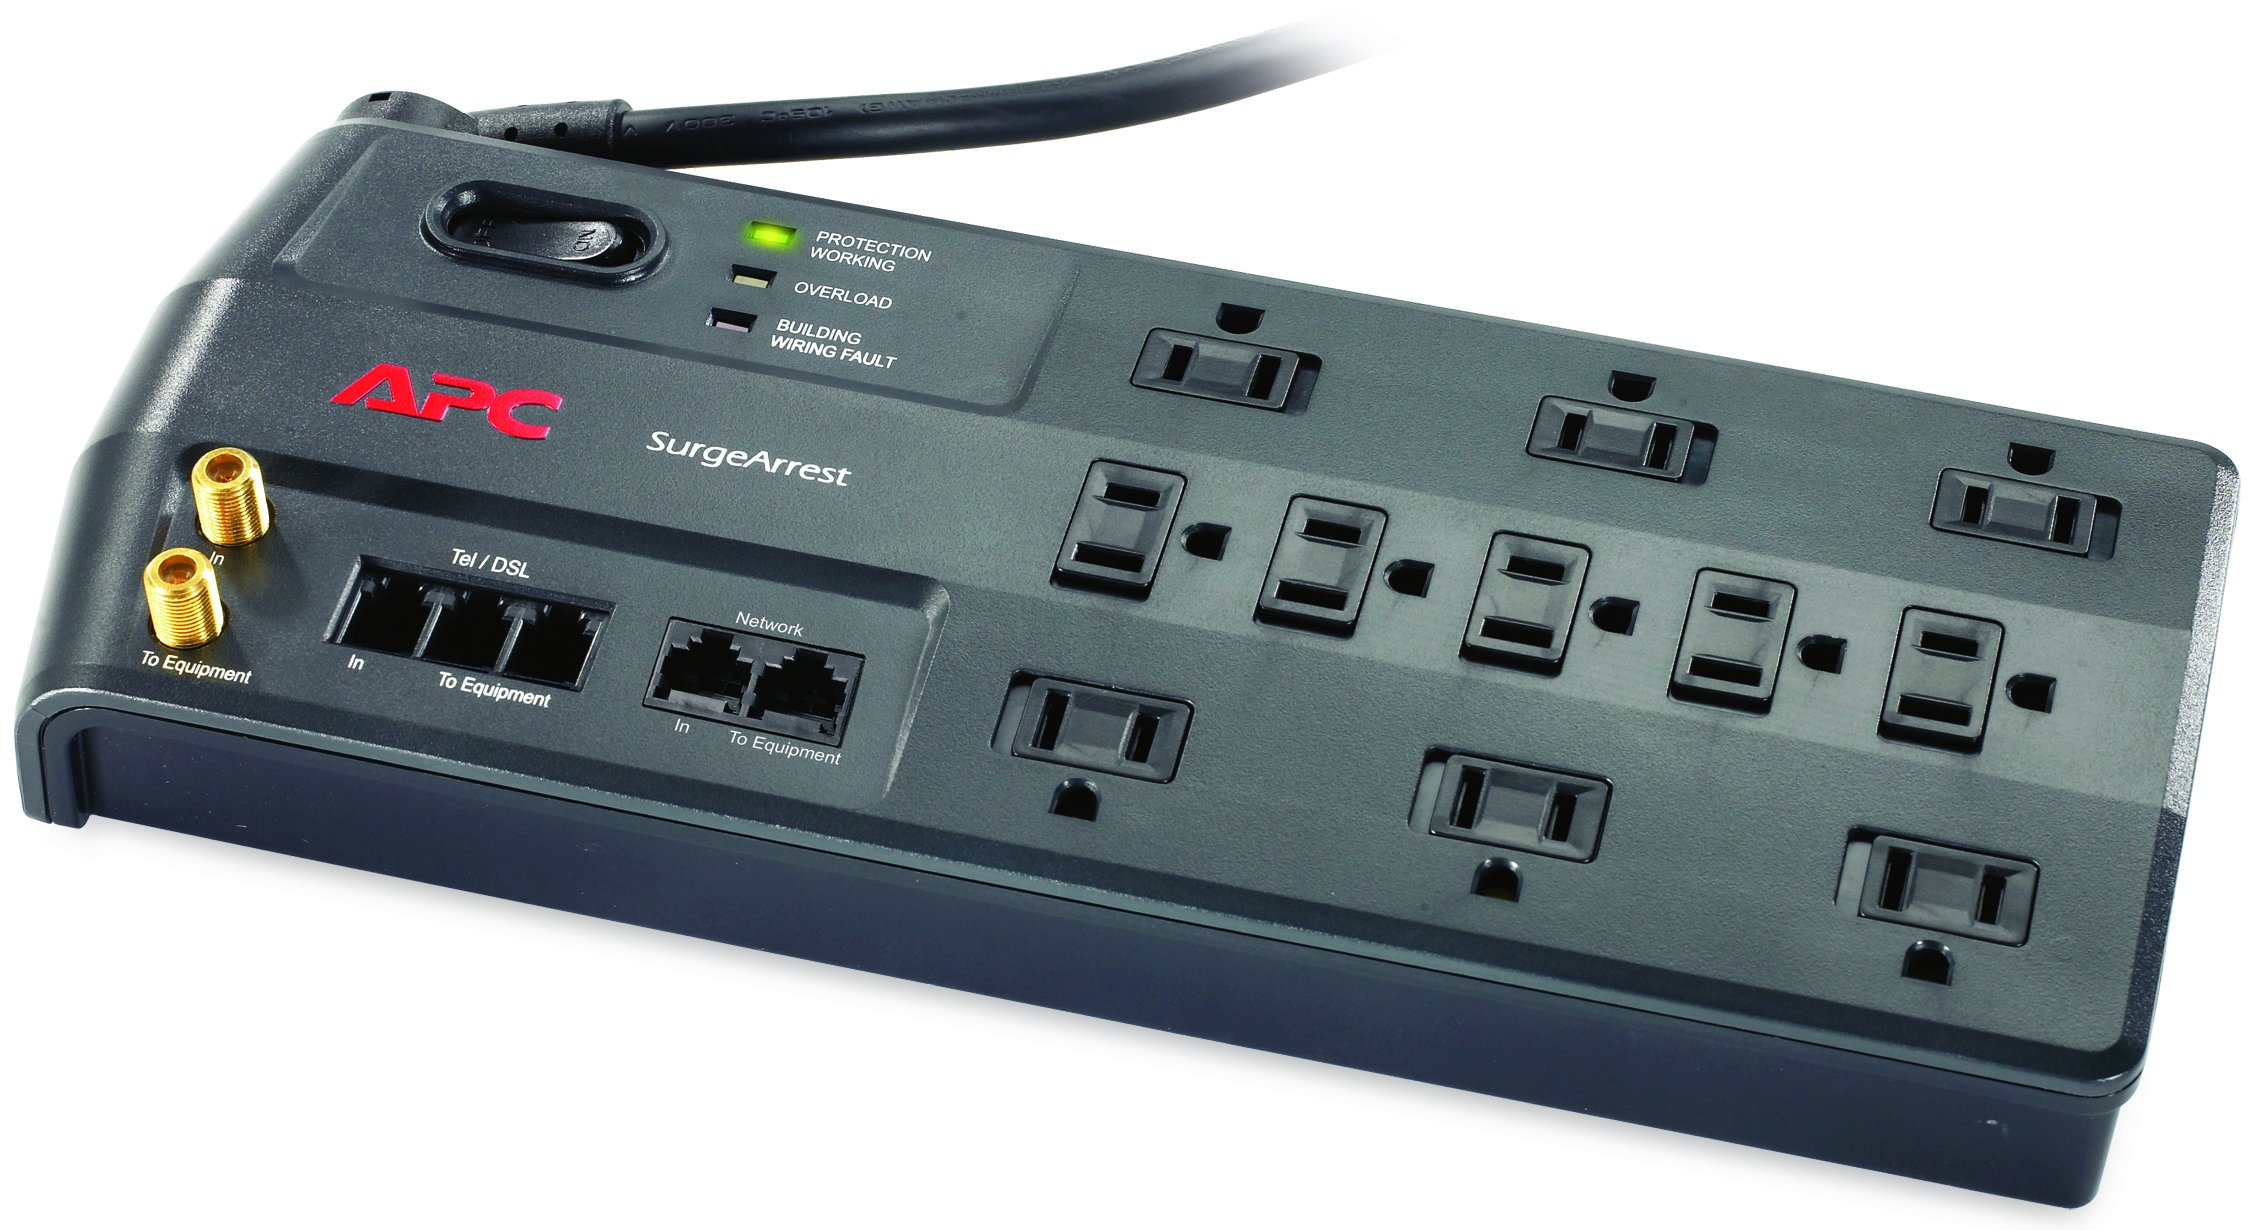 APC 11-Outlet Surge Protector 3020 Joules with Phone, Network Ethernet and Coaxial Protection, SurgeArrest Performance (P11VNT3) by APC